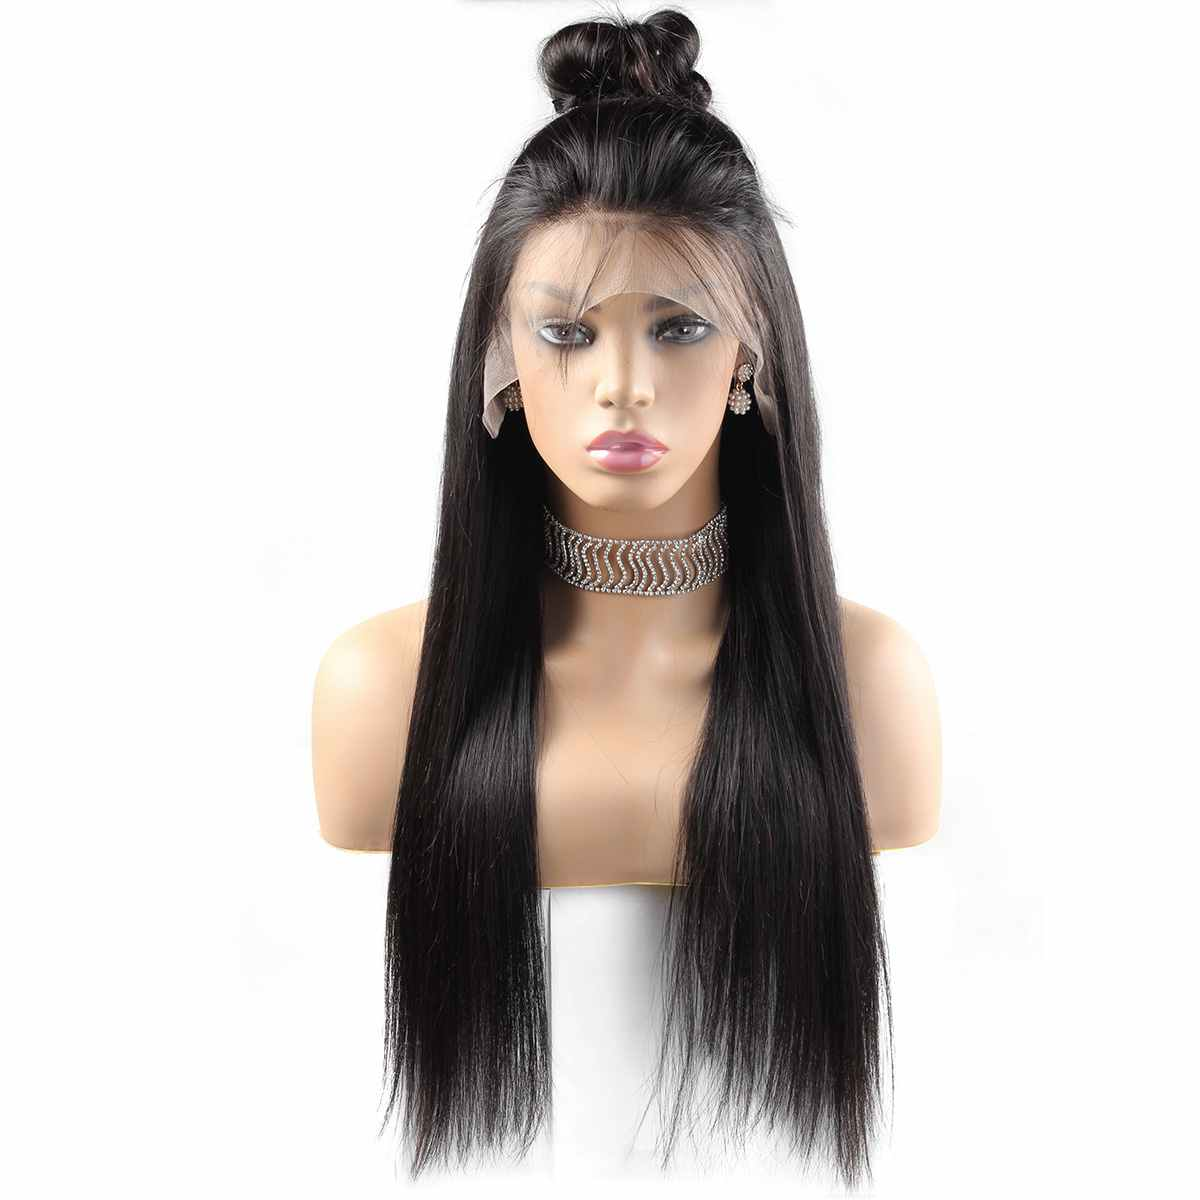 heyhair7 straight lace frontal wig